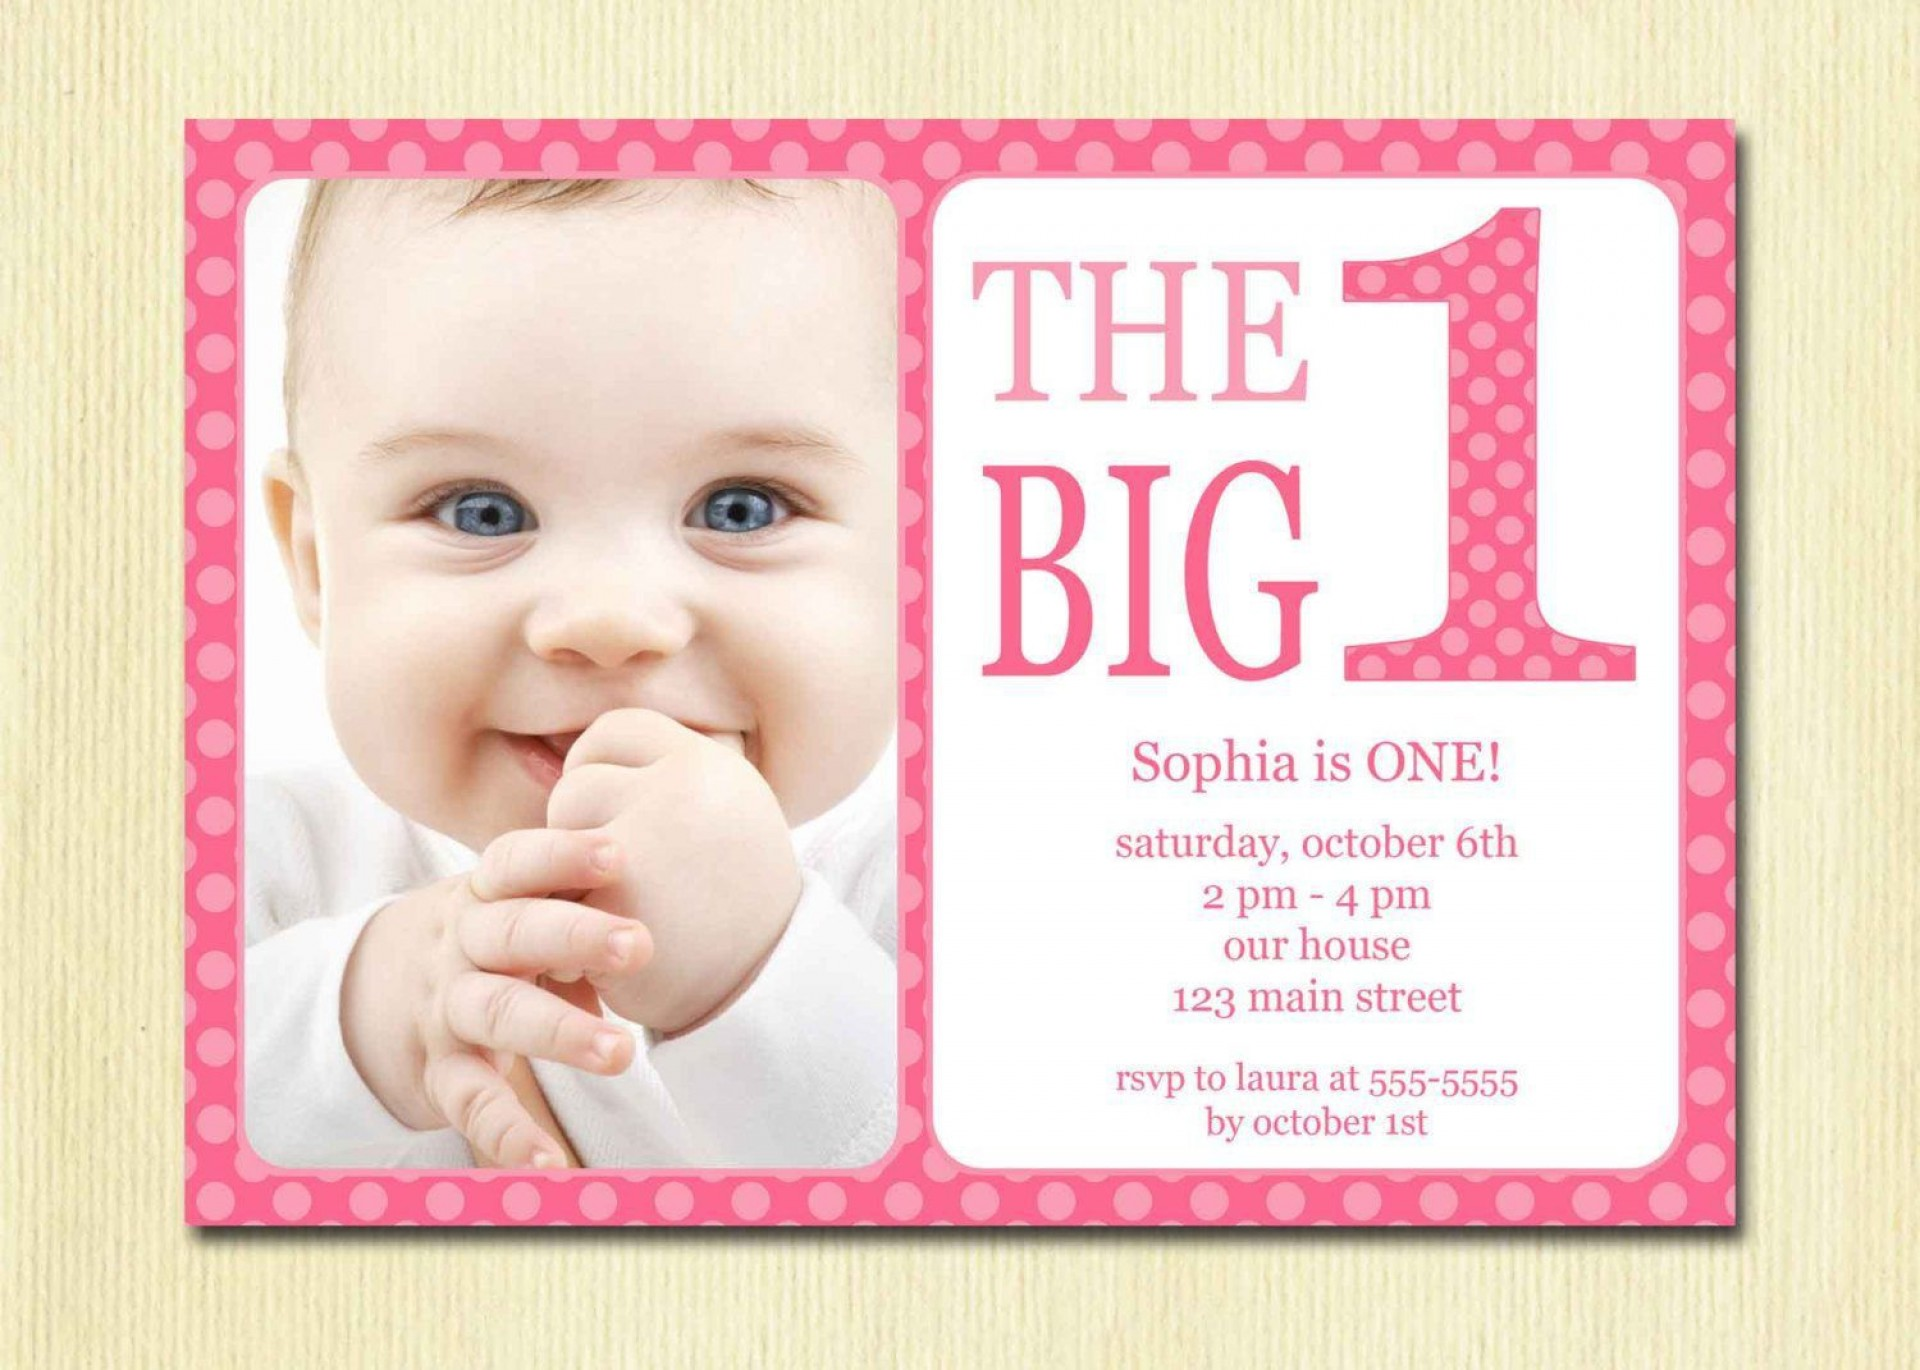 002 Sensational Free 1st Birthday Invitation Template For Word Highest Clarity 1920